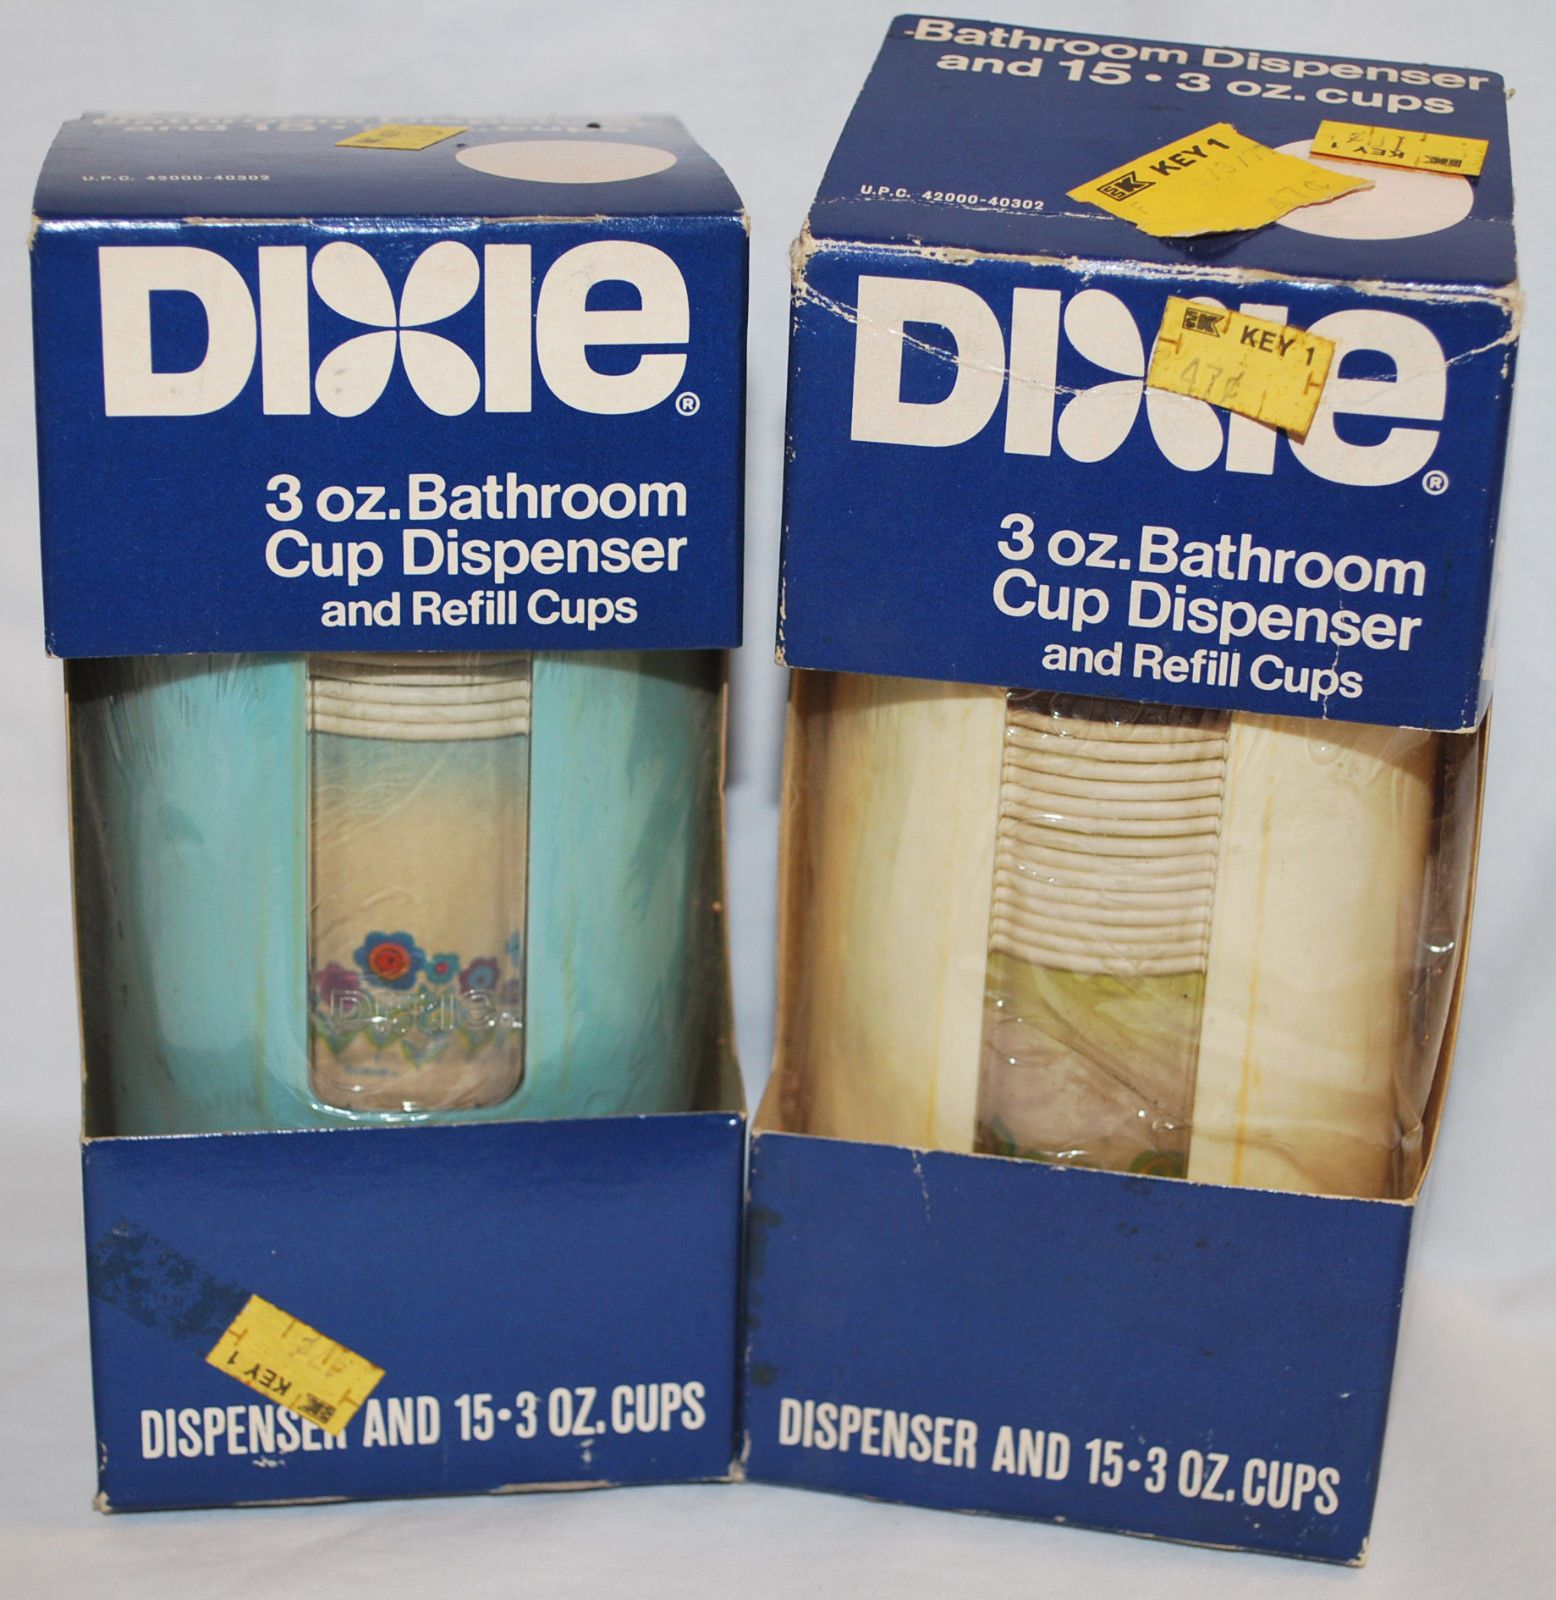 2 VINTAGE RETRO NOS DIXIE CUP BATHROOM WALL MOUNT CUP DISPENSERS WHITE AND  BLUE. 2 VINTAGE RETRO NOS DIXIE CUP BATHROOM WALL MOUNT CUP DISPENSERS